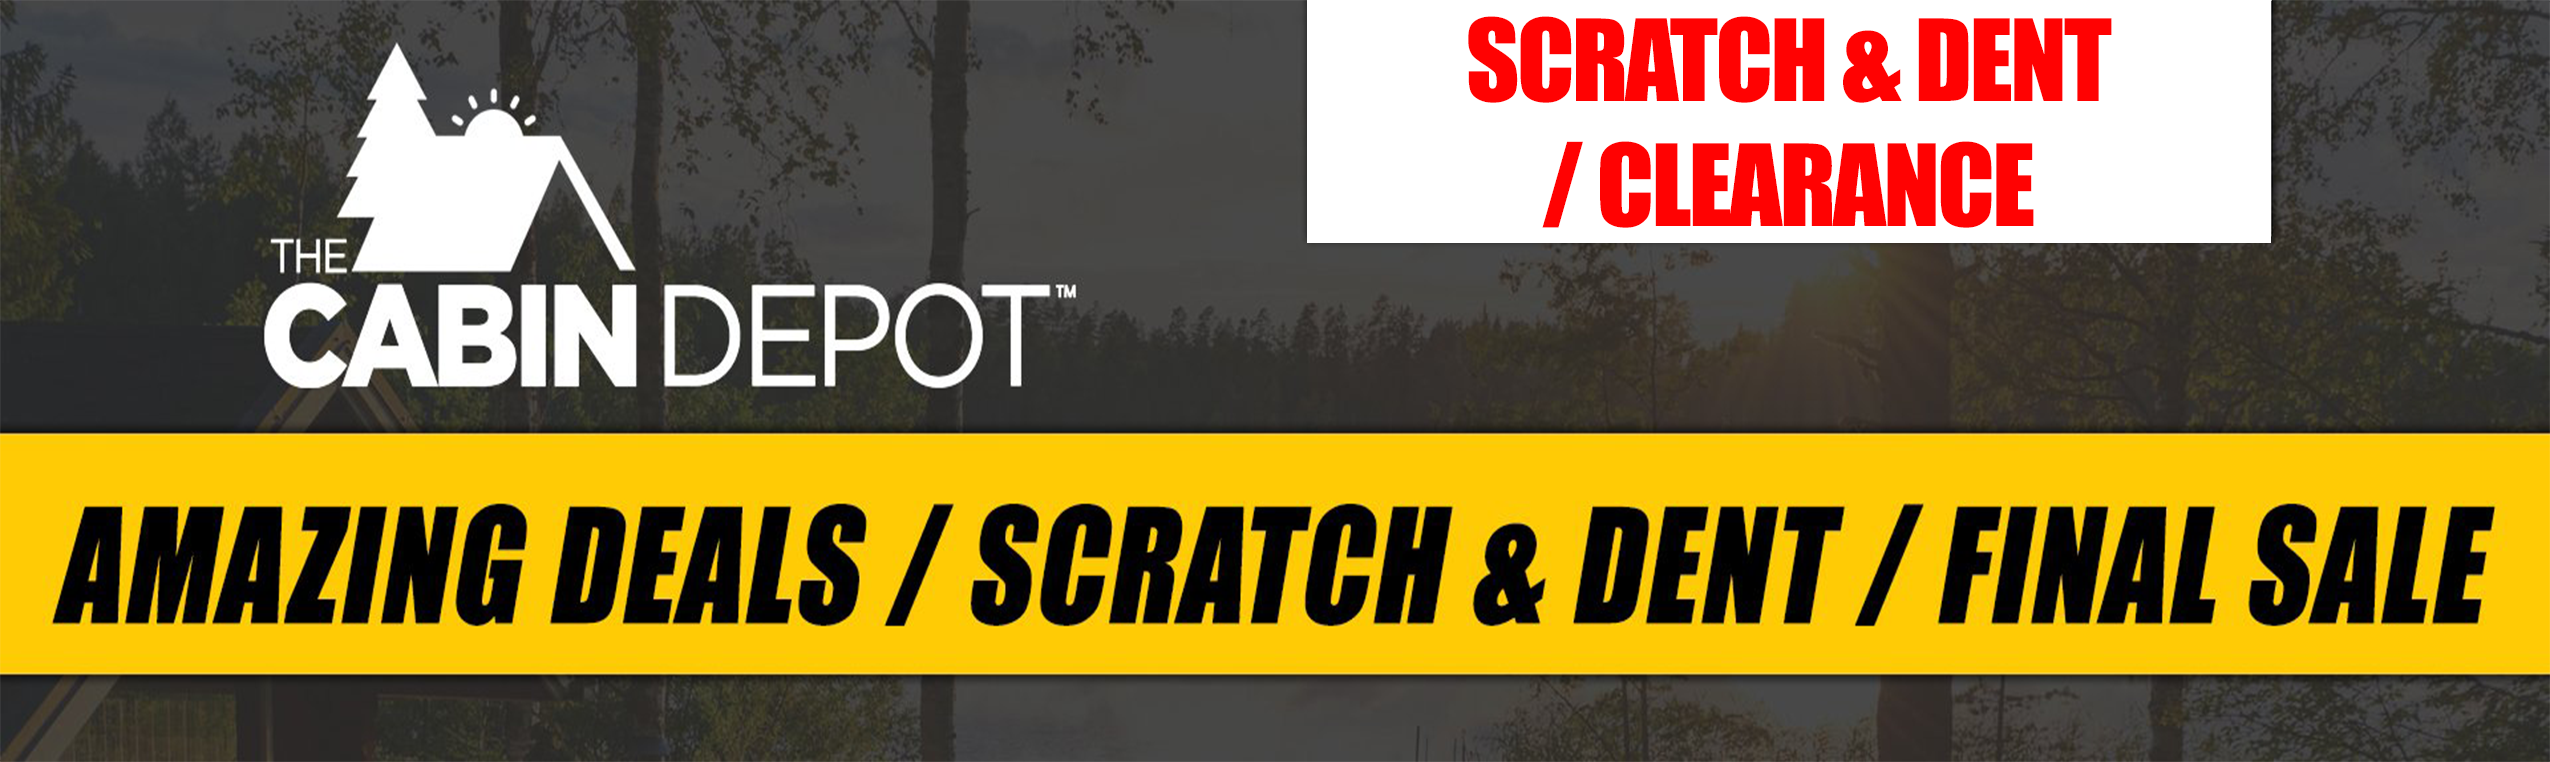 The Cabin Depot™ Scratch & Dent / Clearance Page